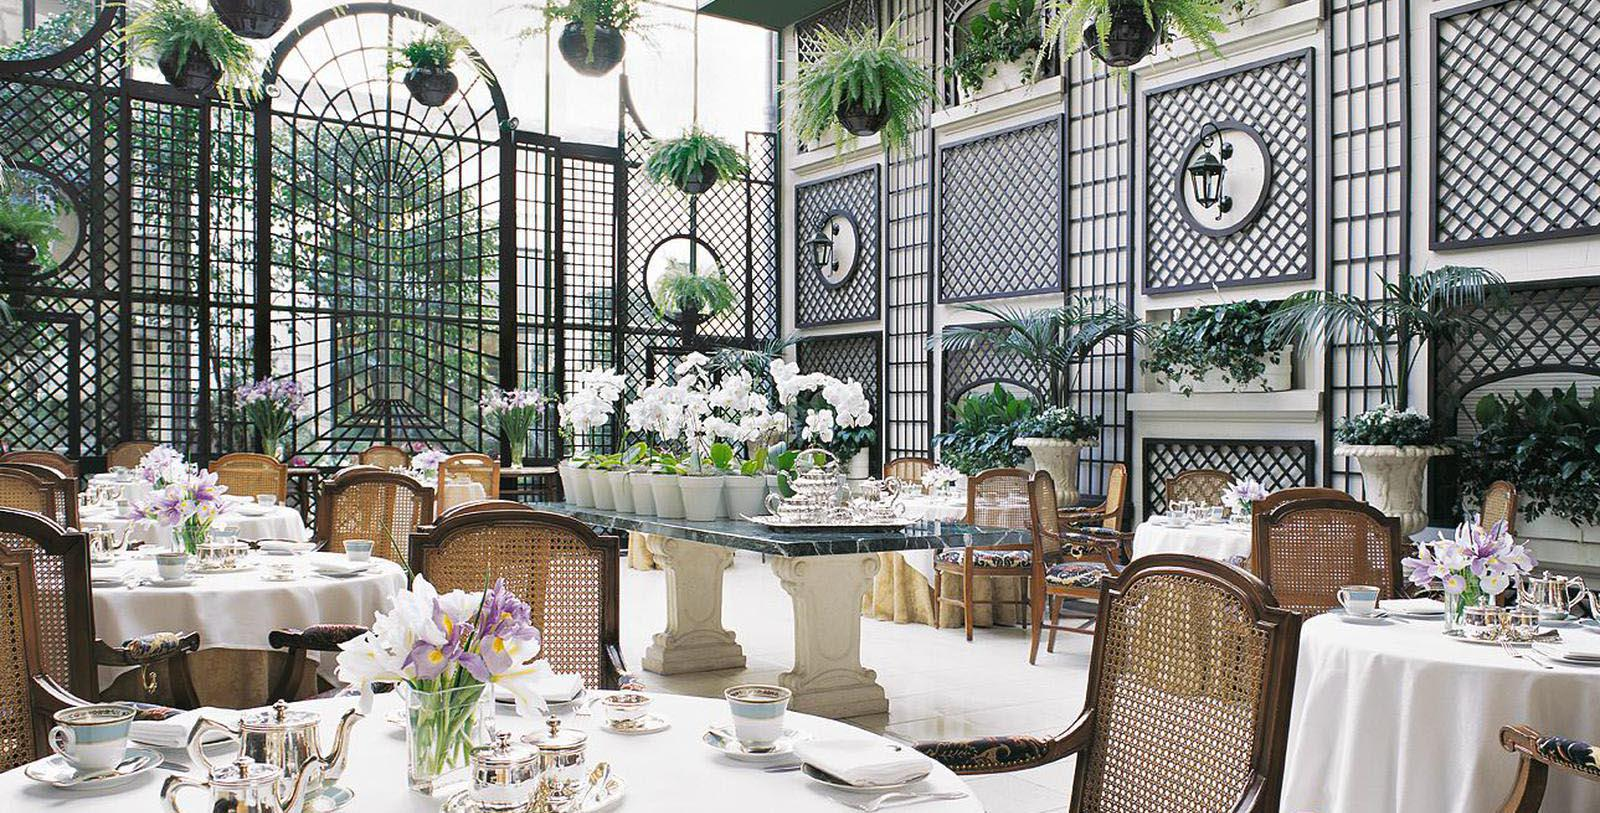 Image of restaurant at Alvear Palace Hotel, 1932, Member of Historic Hotels Worldwide, in Buenos Aires, Argentina, Experience